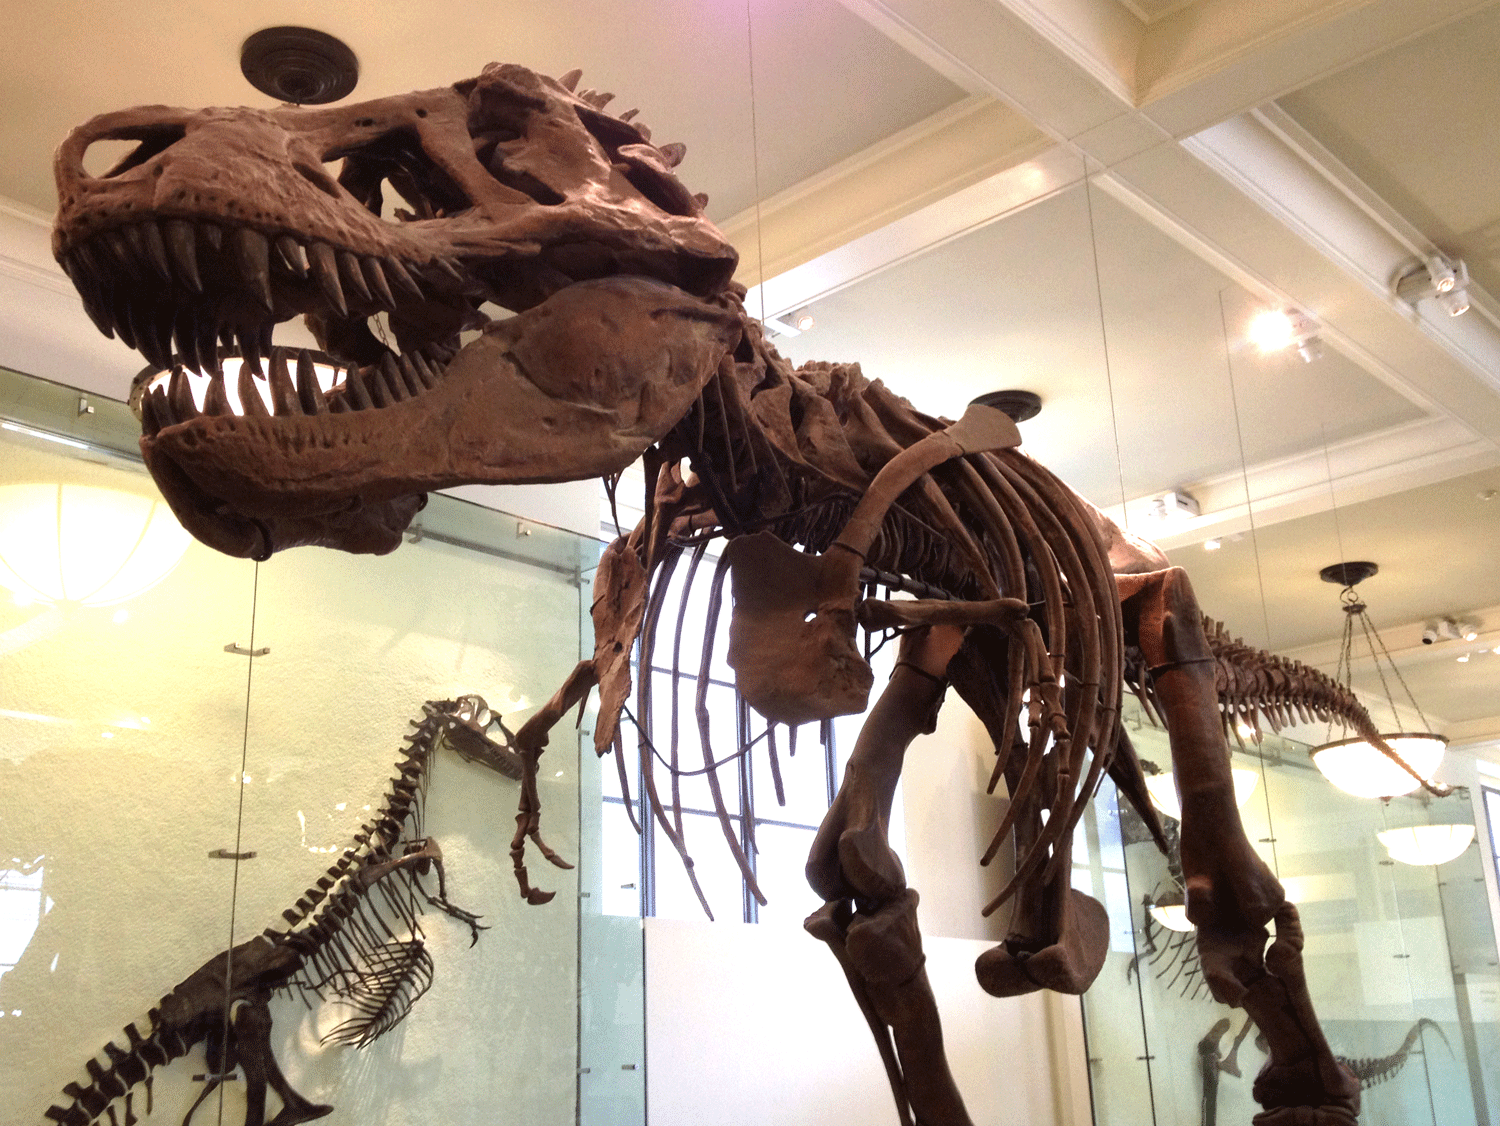 Photograph of a T. rex skeleton at the American Museum of Natural History